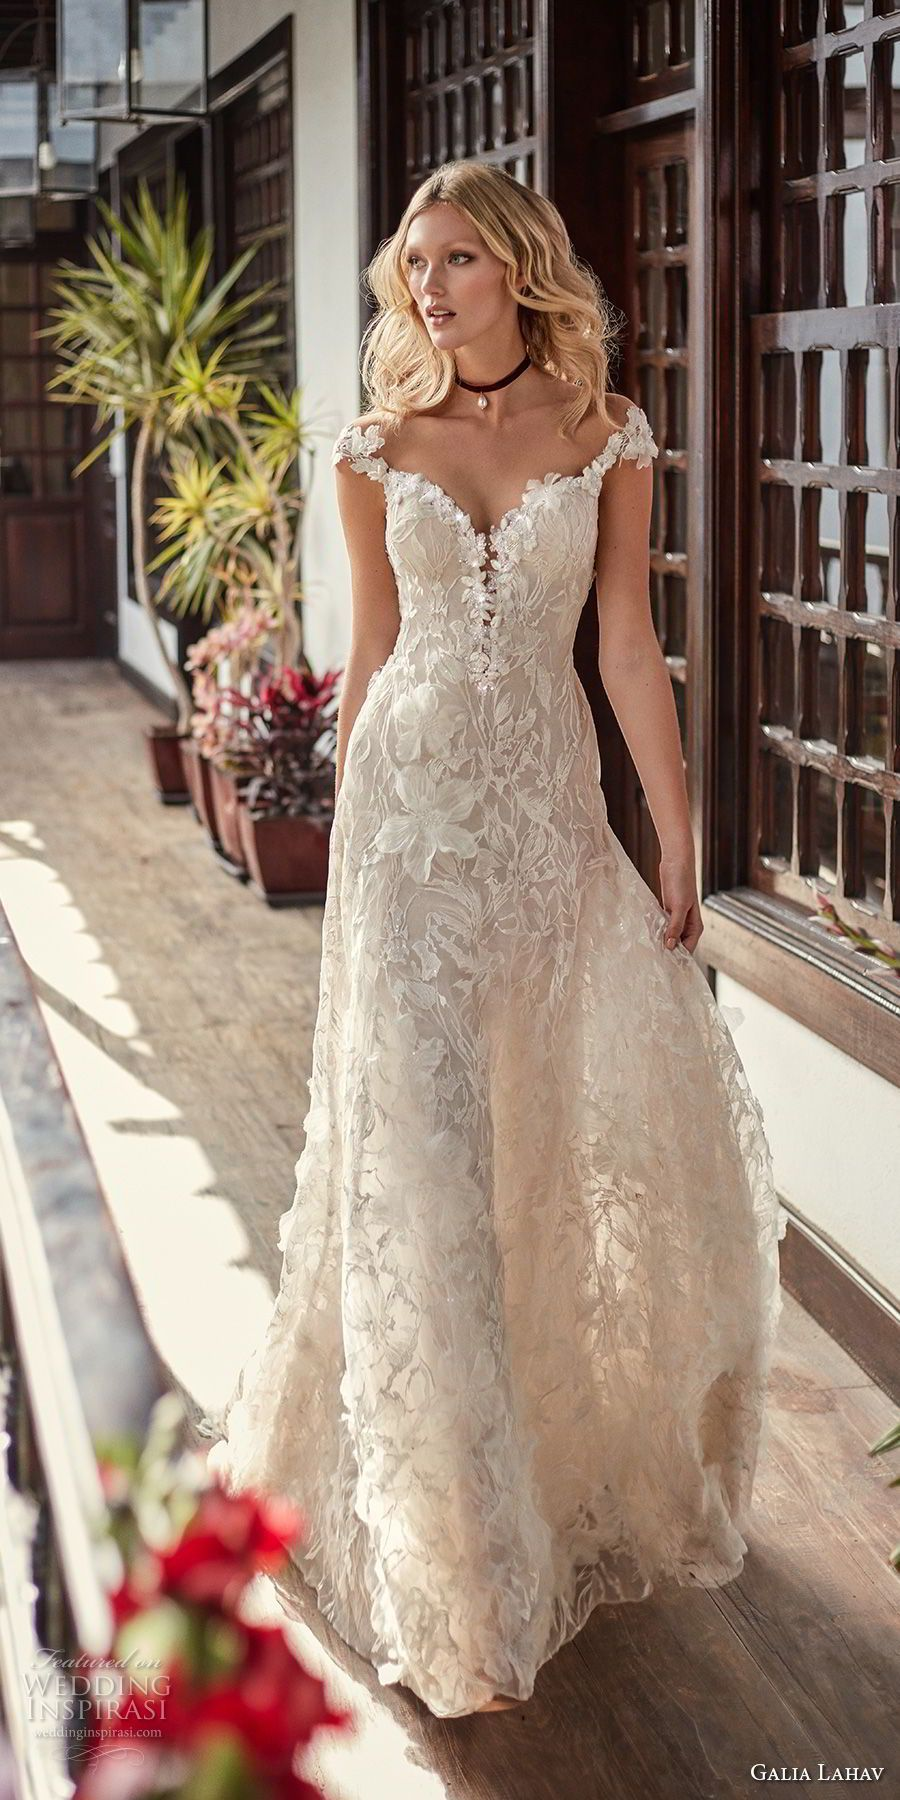 Galia lahav couture fall bridal cap sleeves sweetheart neckline